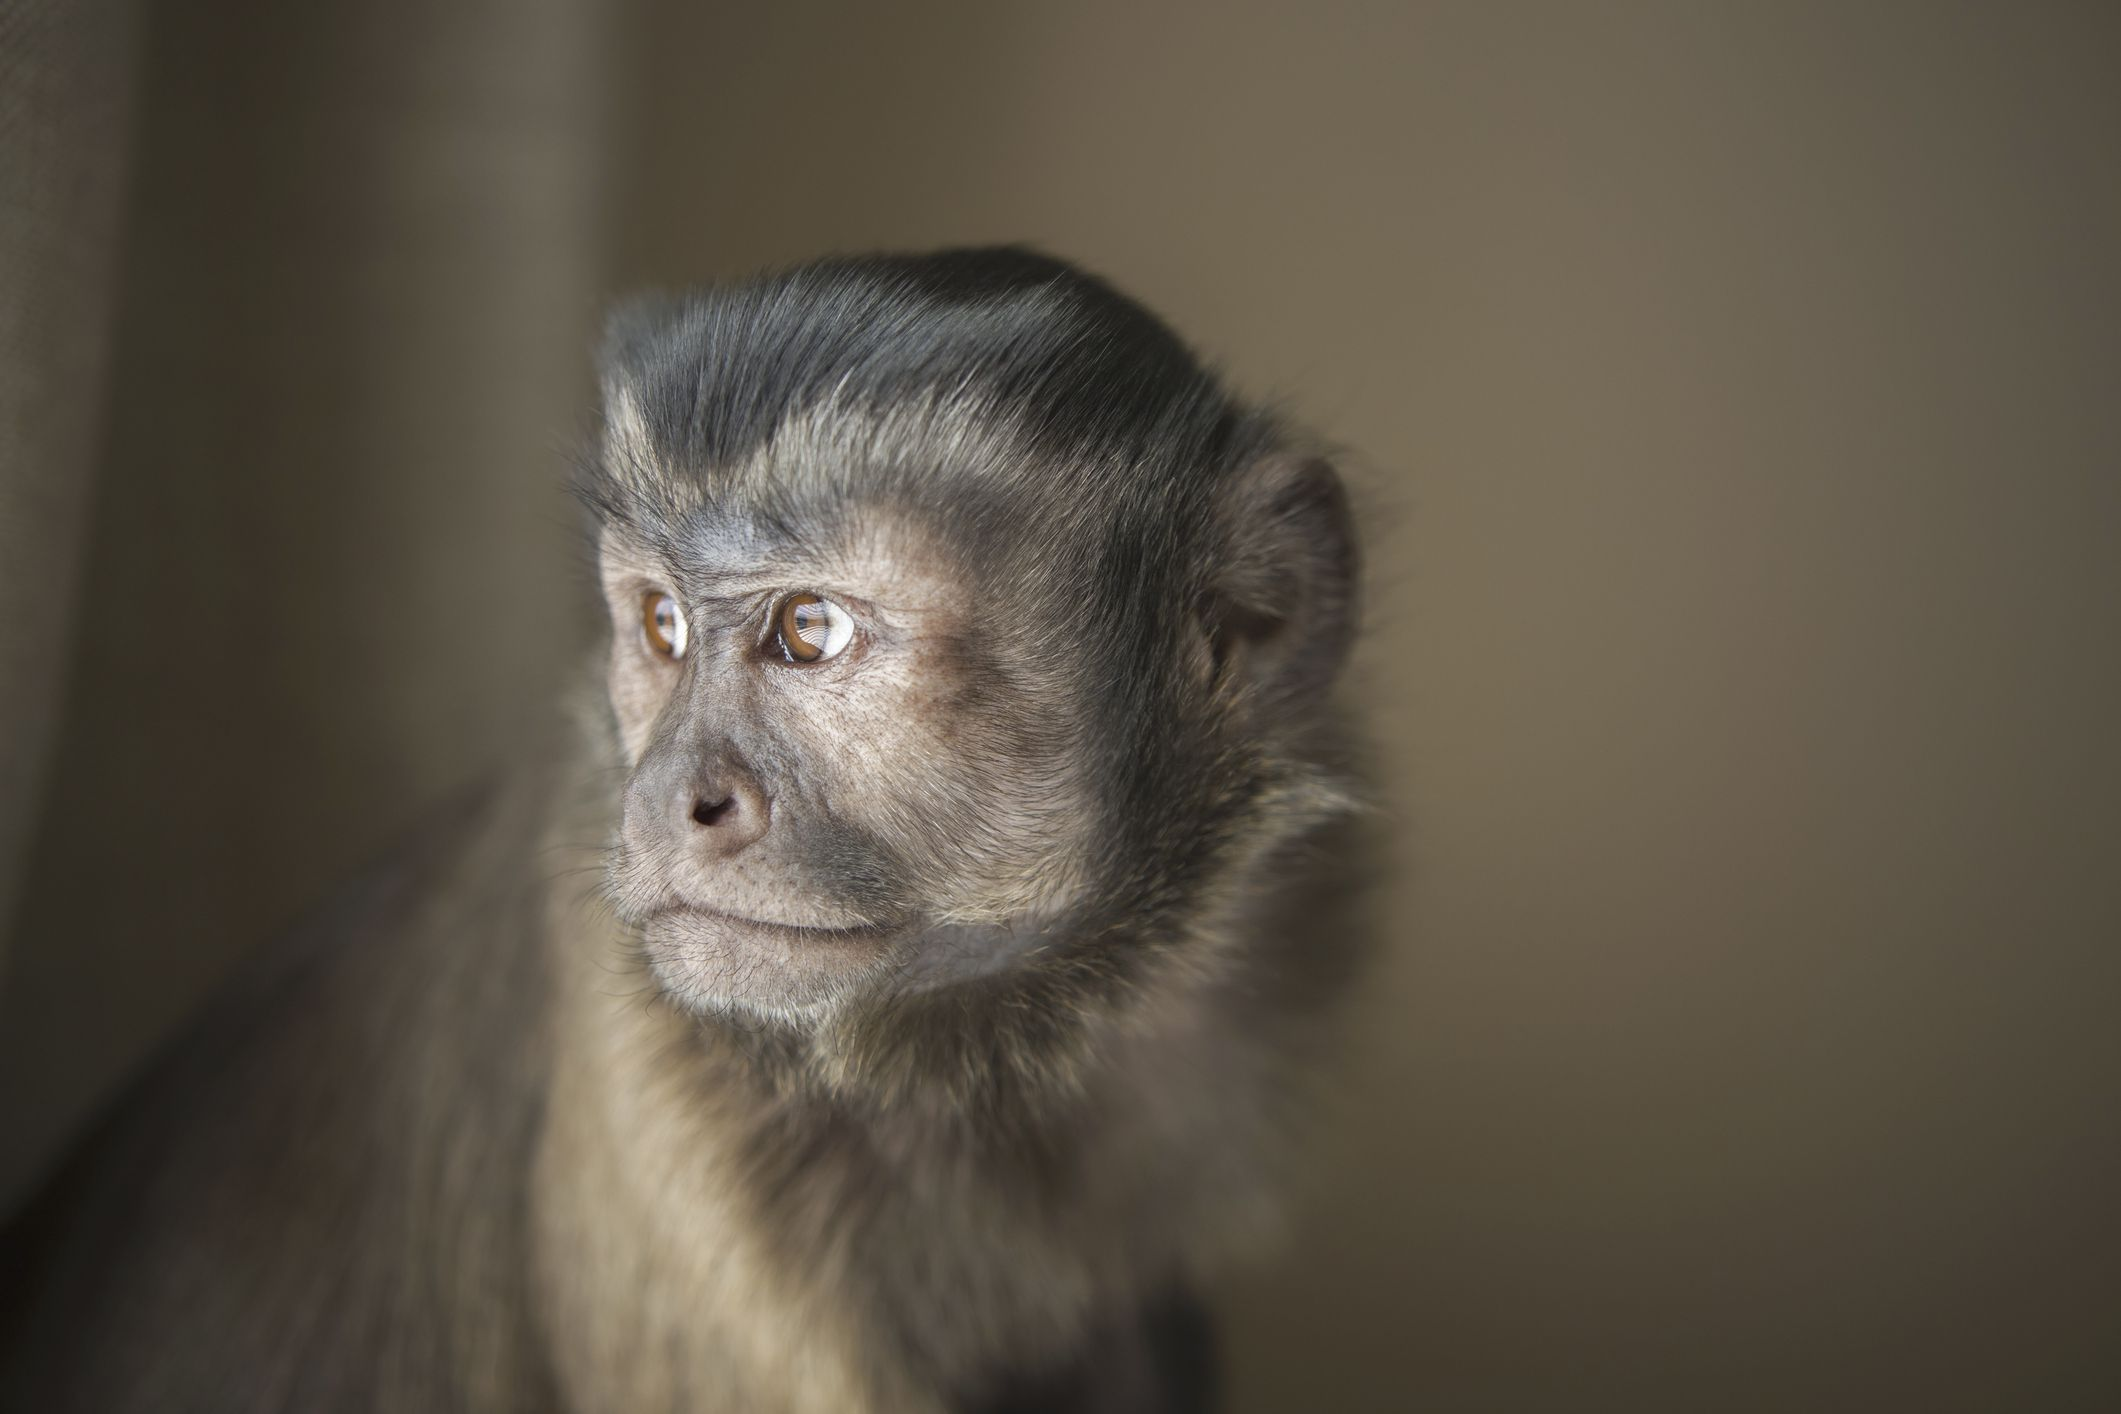 issues with keeping a monkey as a pet